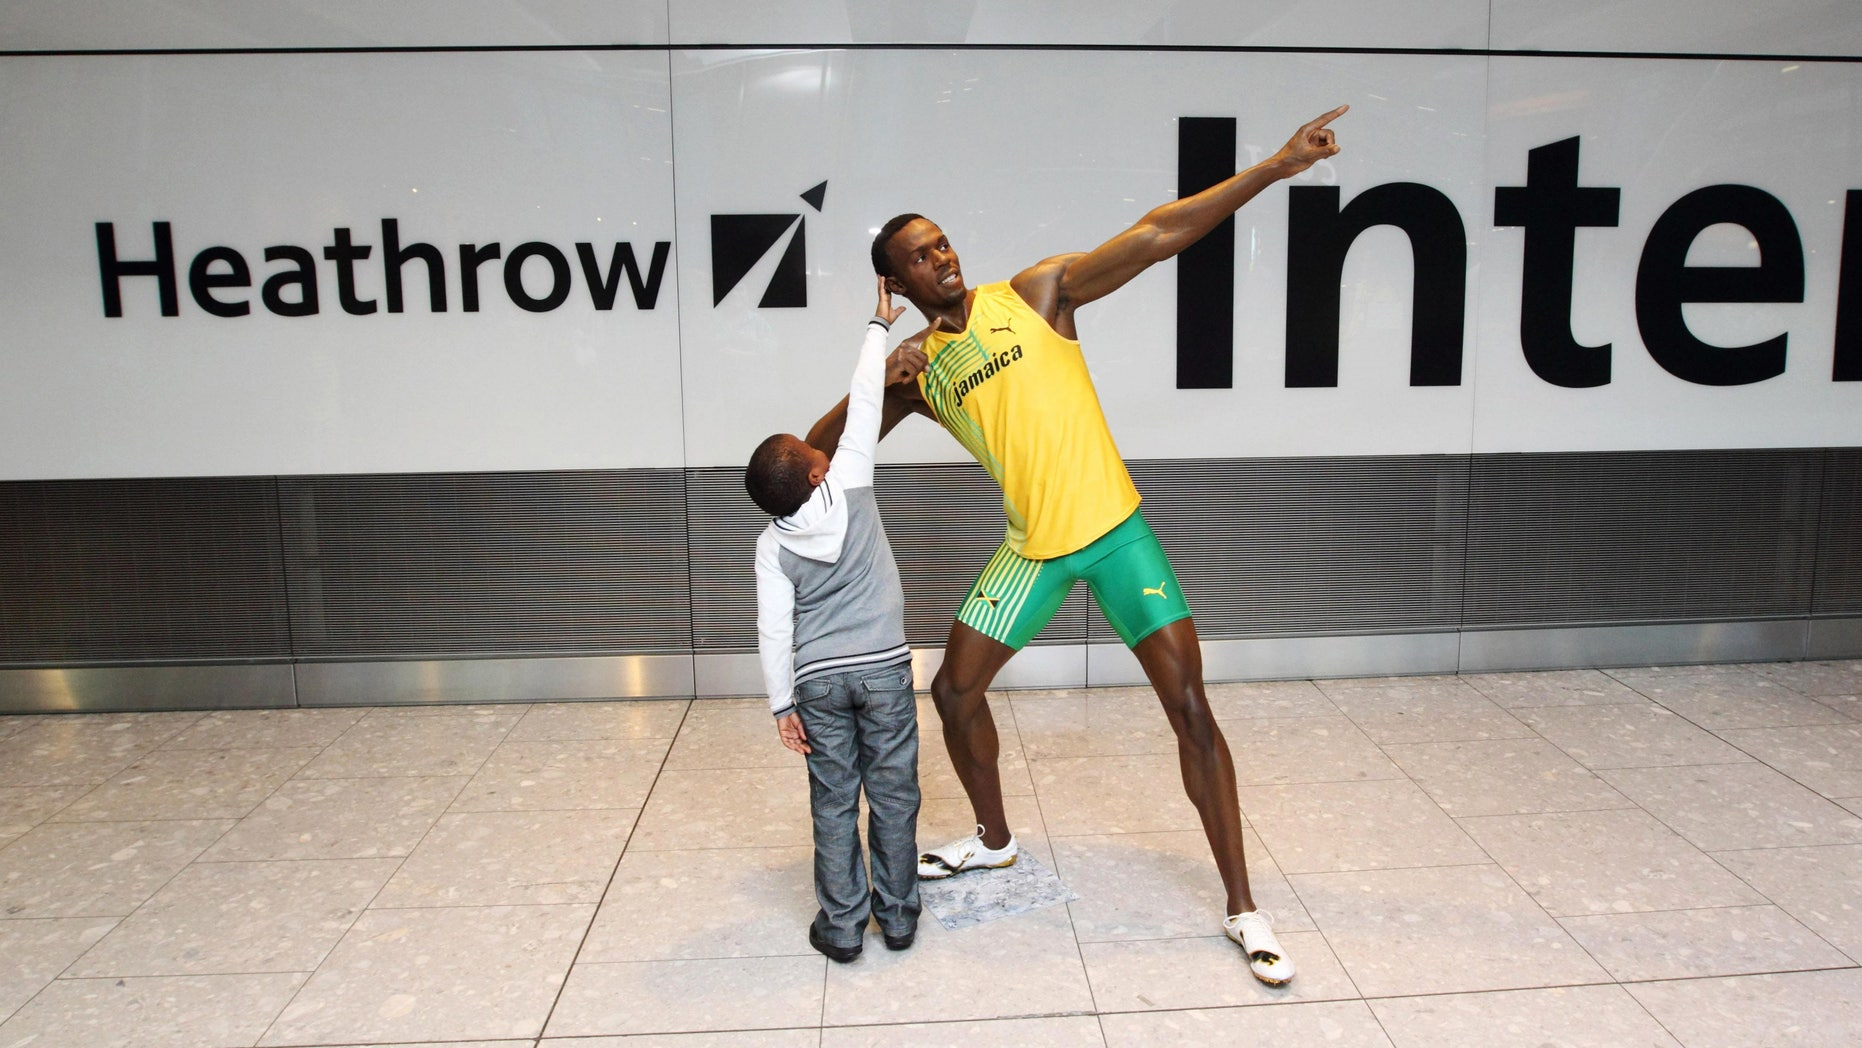 July 12, 2012: A child reaches up to touch the wax figure of Usain Bolt, as passengers arrive at London's Heathrow Airport Terminal 5, are greeted by the wax figure.